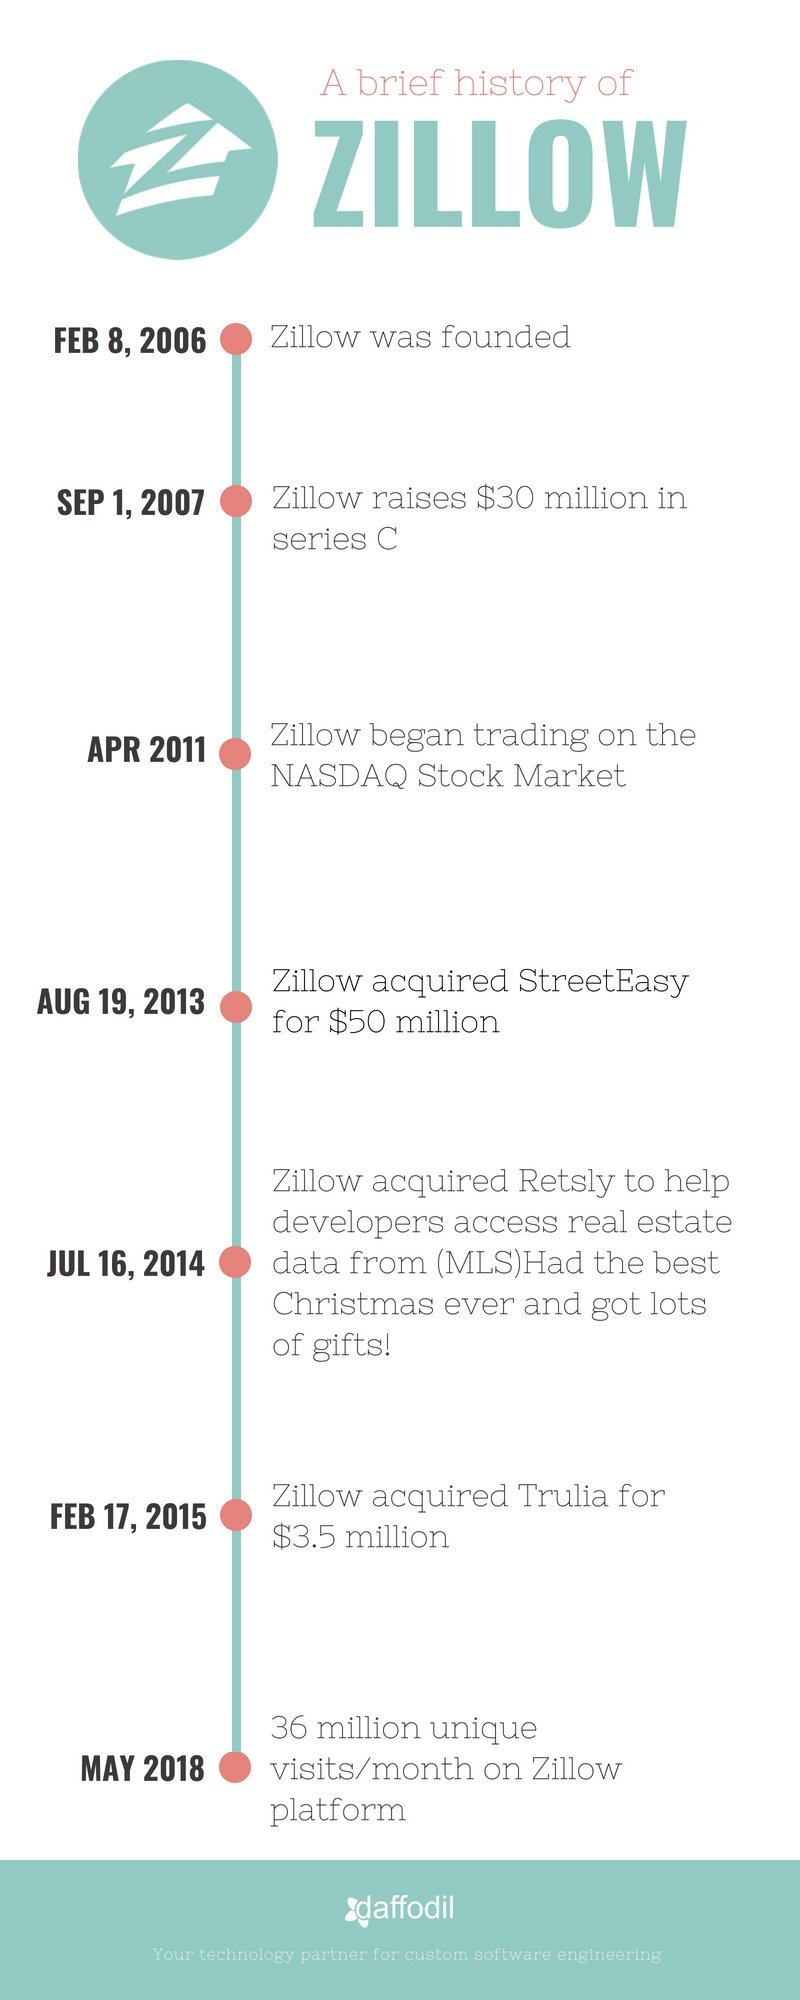 Zillow Timeline